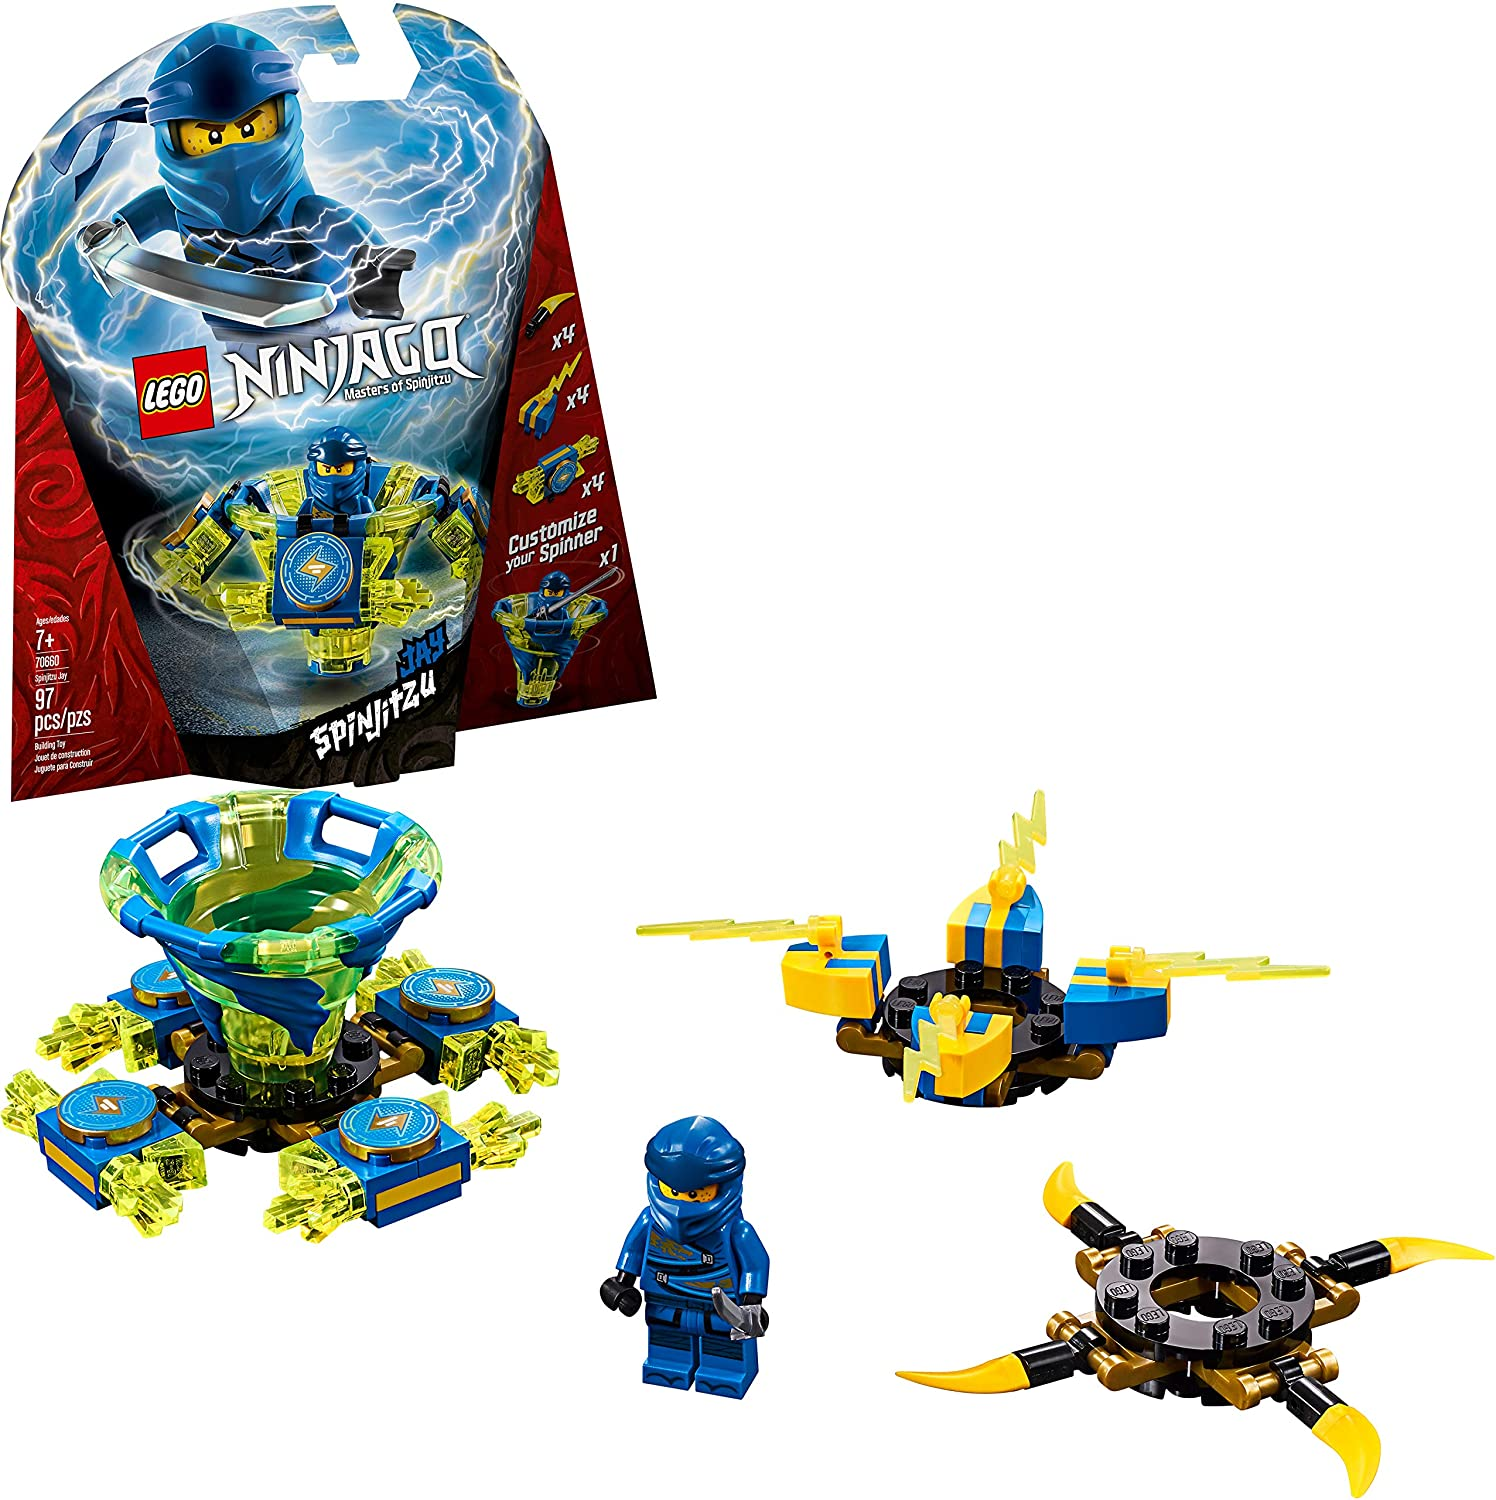 LEGO NINJAGO Spinjitzu Jay 70660 Building Kit, 2019 (97 Pieces)